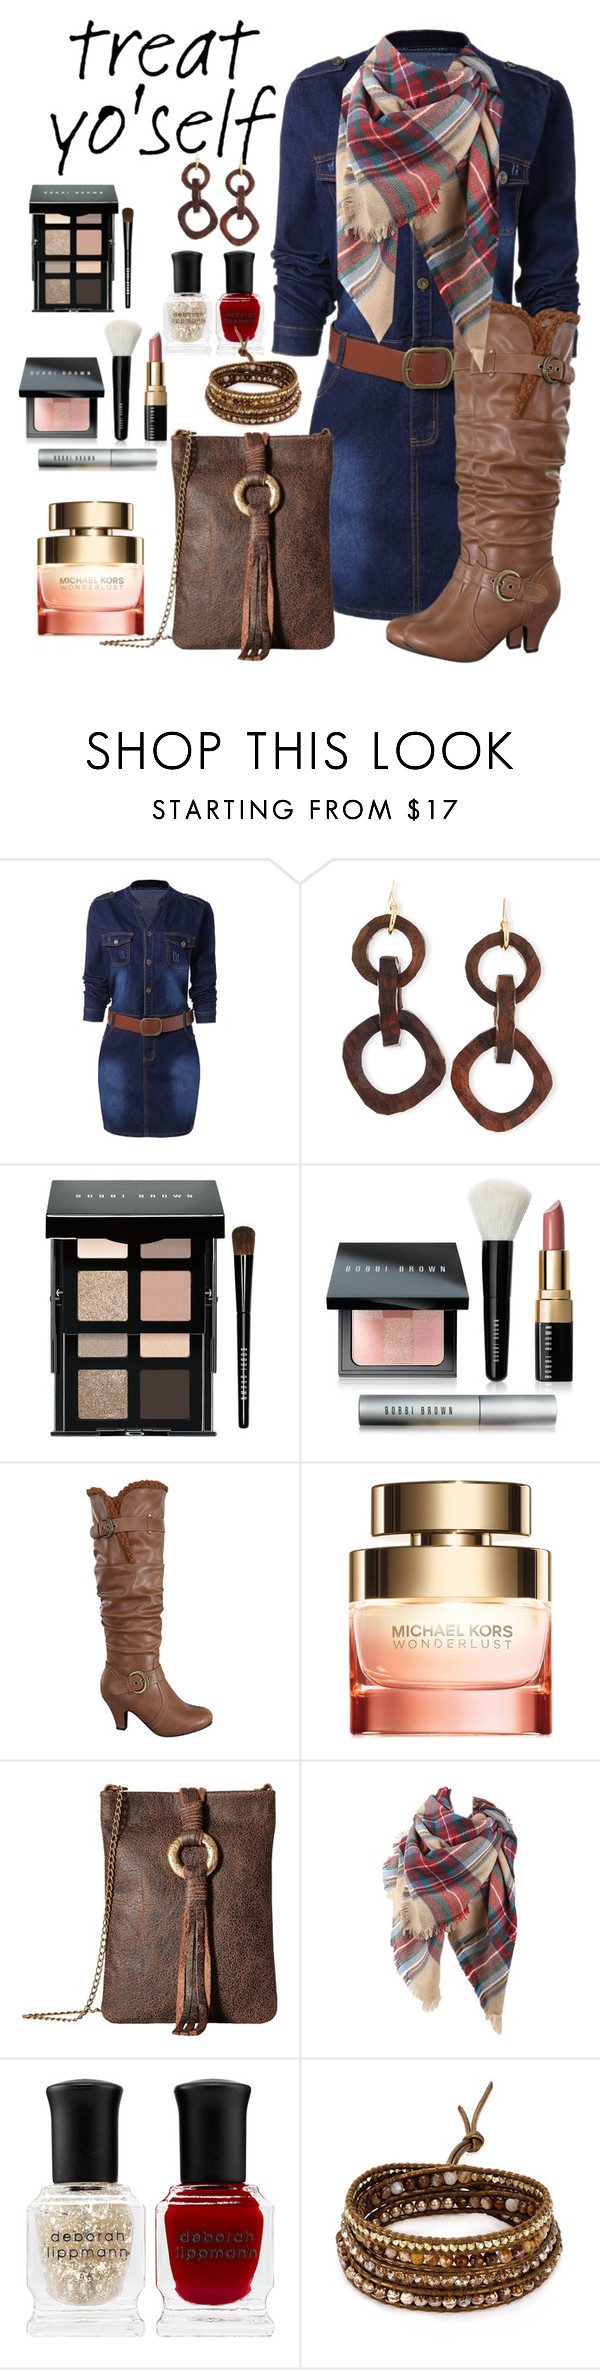 """A little treat for me"" by hubunch ❤ liked on Polyvore featuring NEST Jewelry, Bobbi Brown Cosmetics, Michael Kors, Leatherock, Deborah Lippmann, Chan Luu and treatyoself"